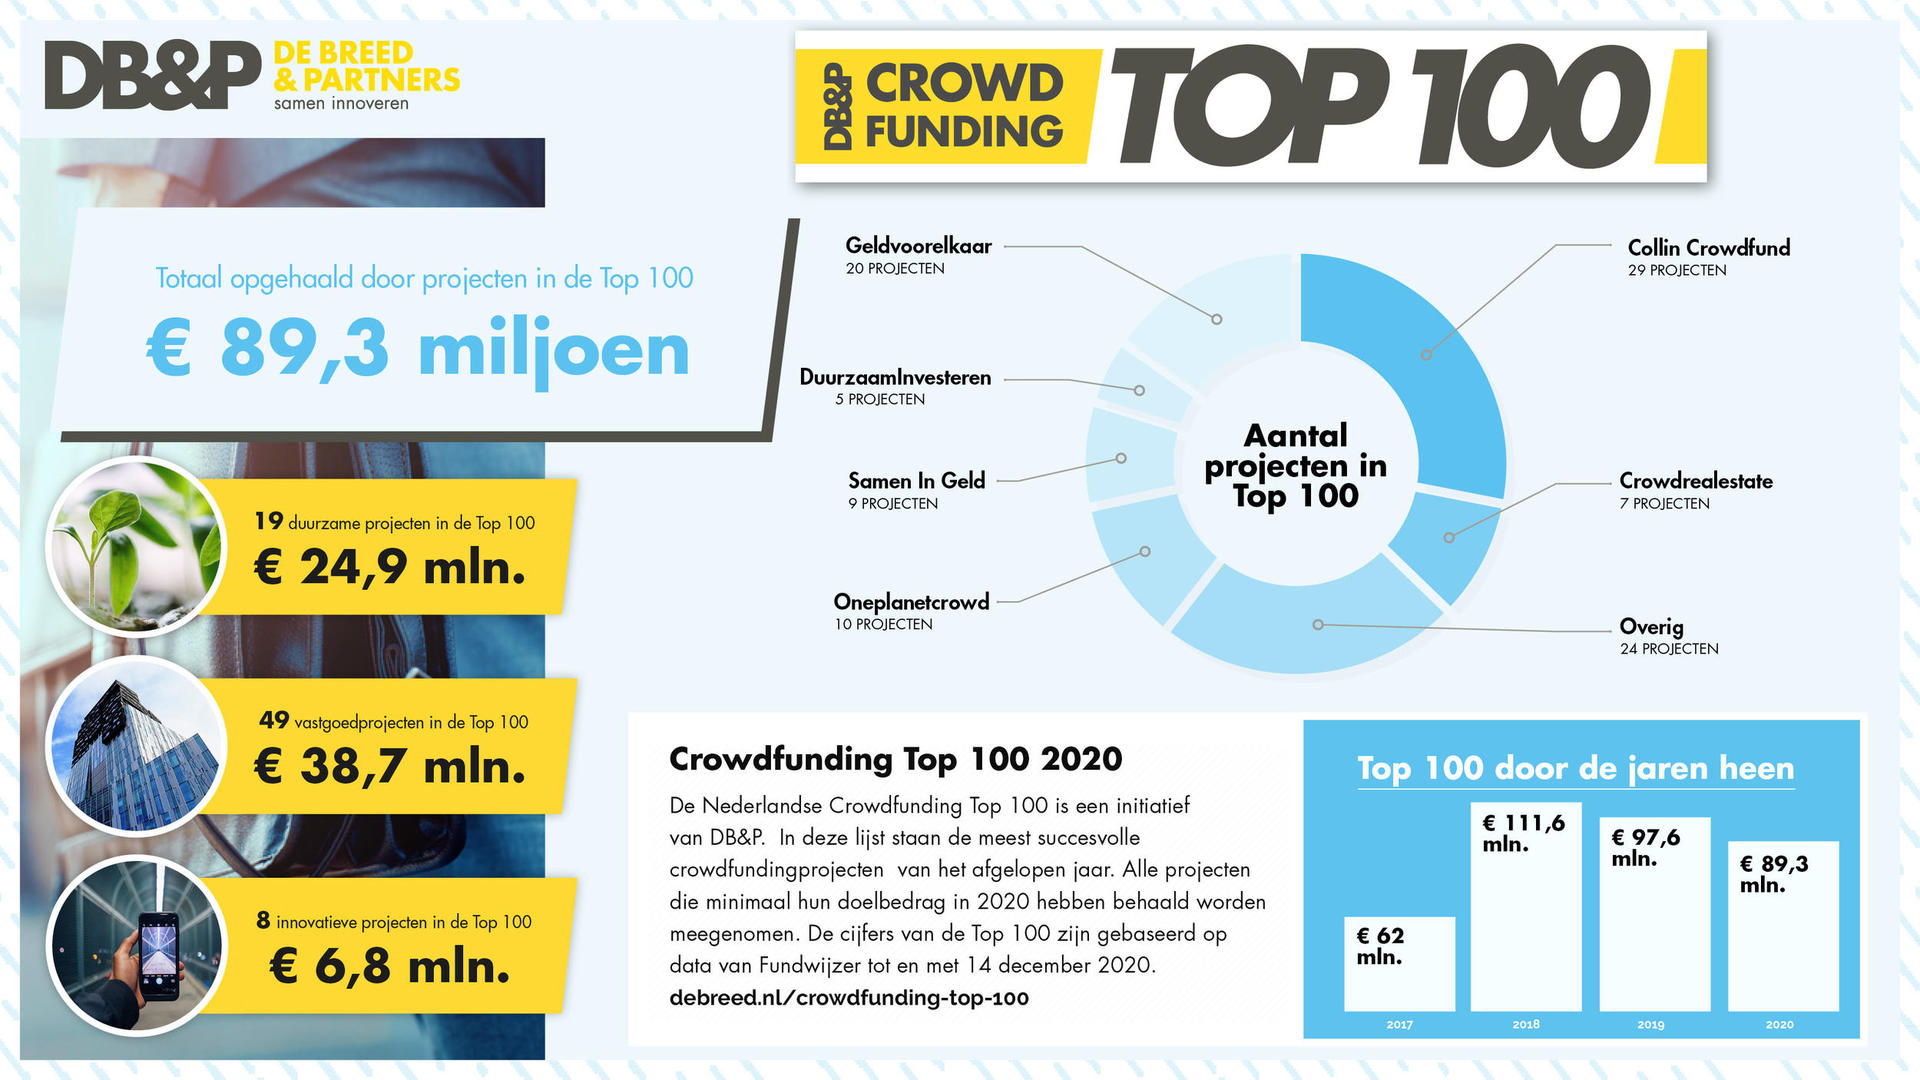 Crowdfunding Top 100 2020